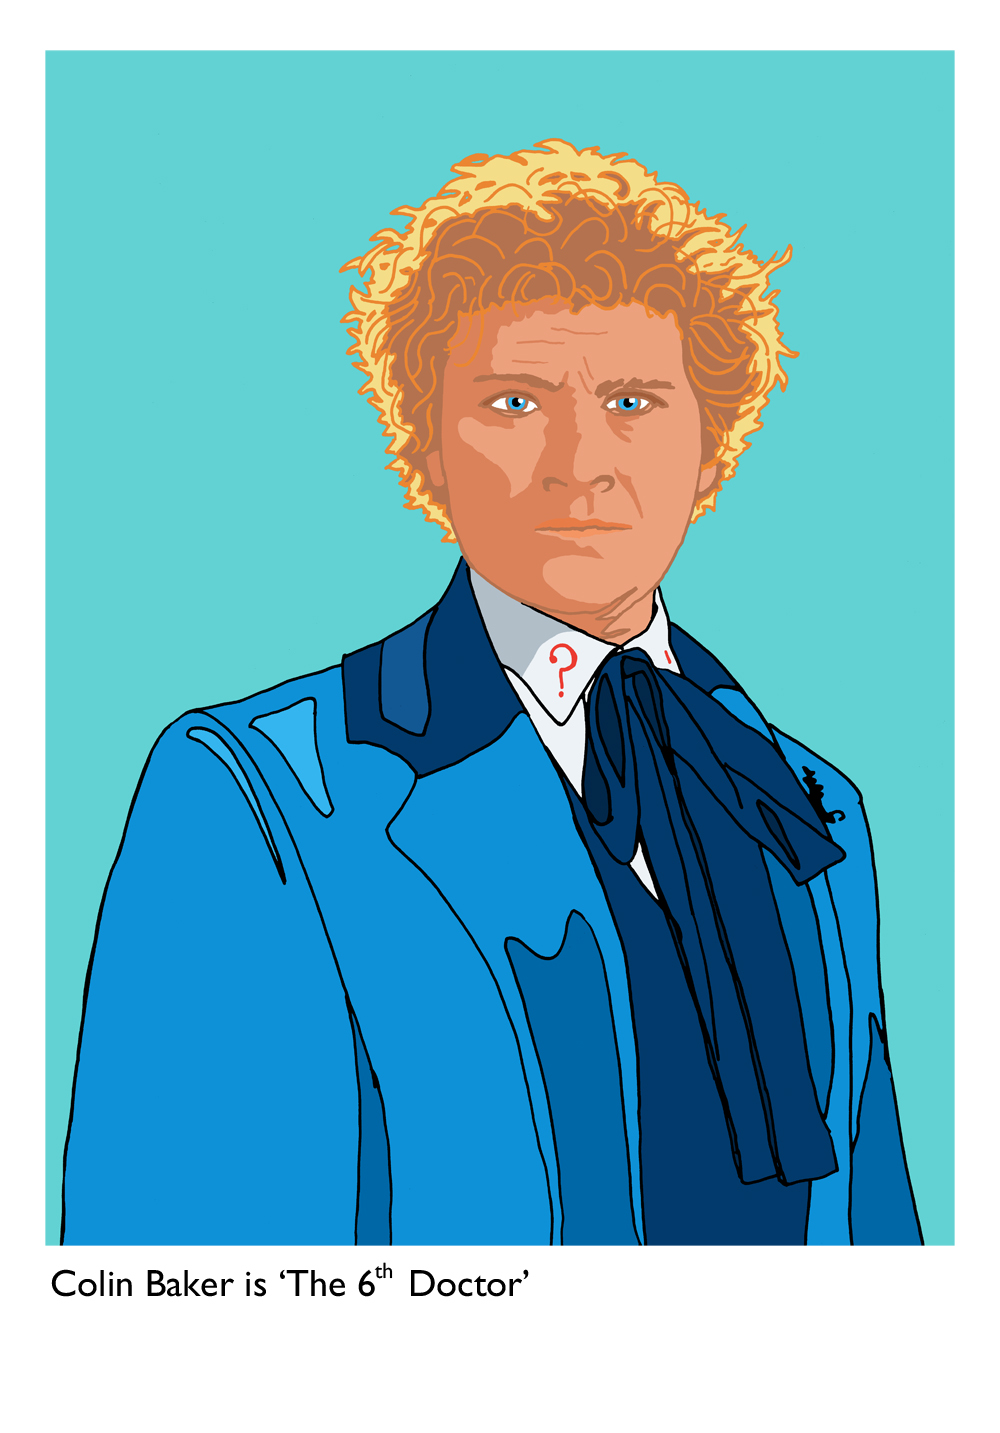 Colin Baker is 'The 6th Doctor' - Limited edition print